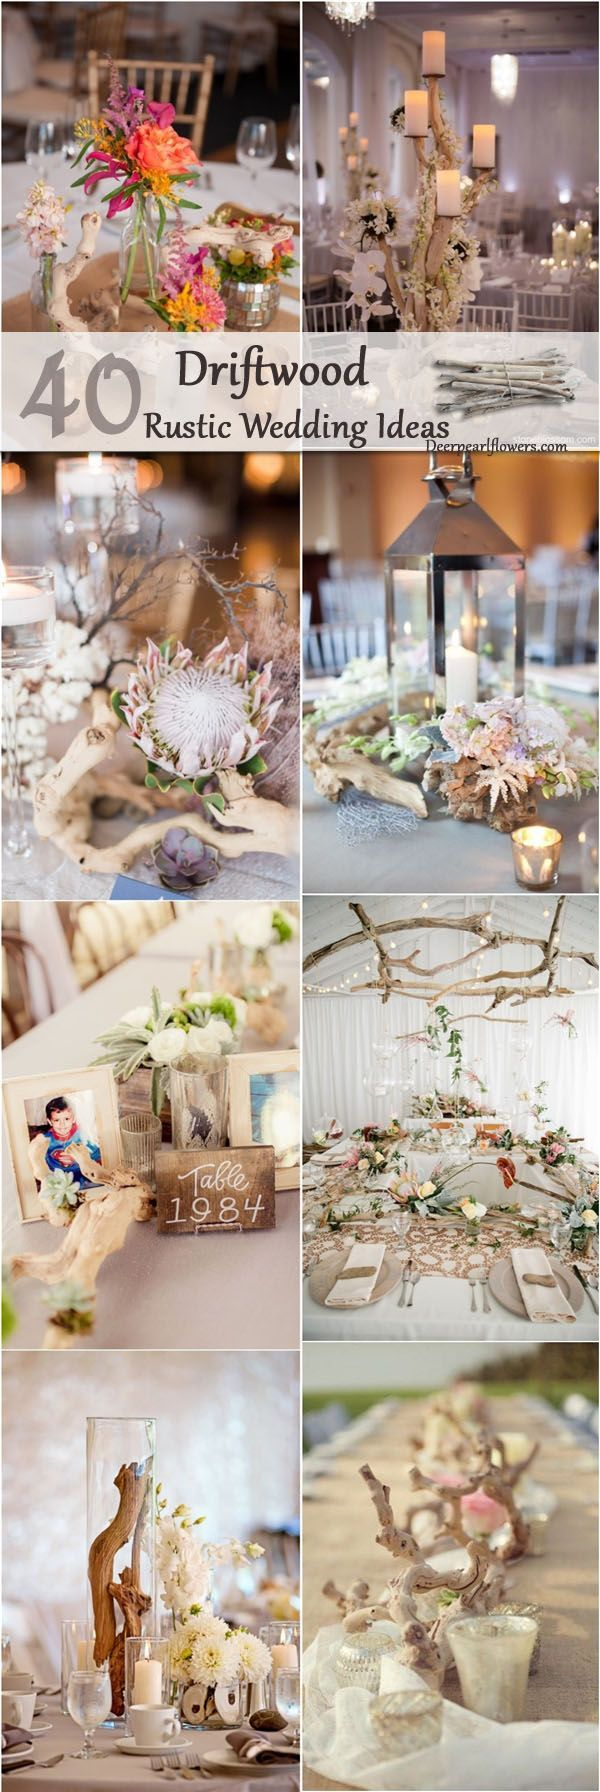 rustic country beach driftwood wedding ideas / http://www.deerpearlflowers.com/driftwood-wedding-decor-ideas/2/